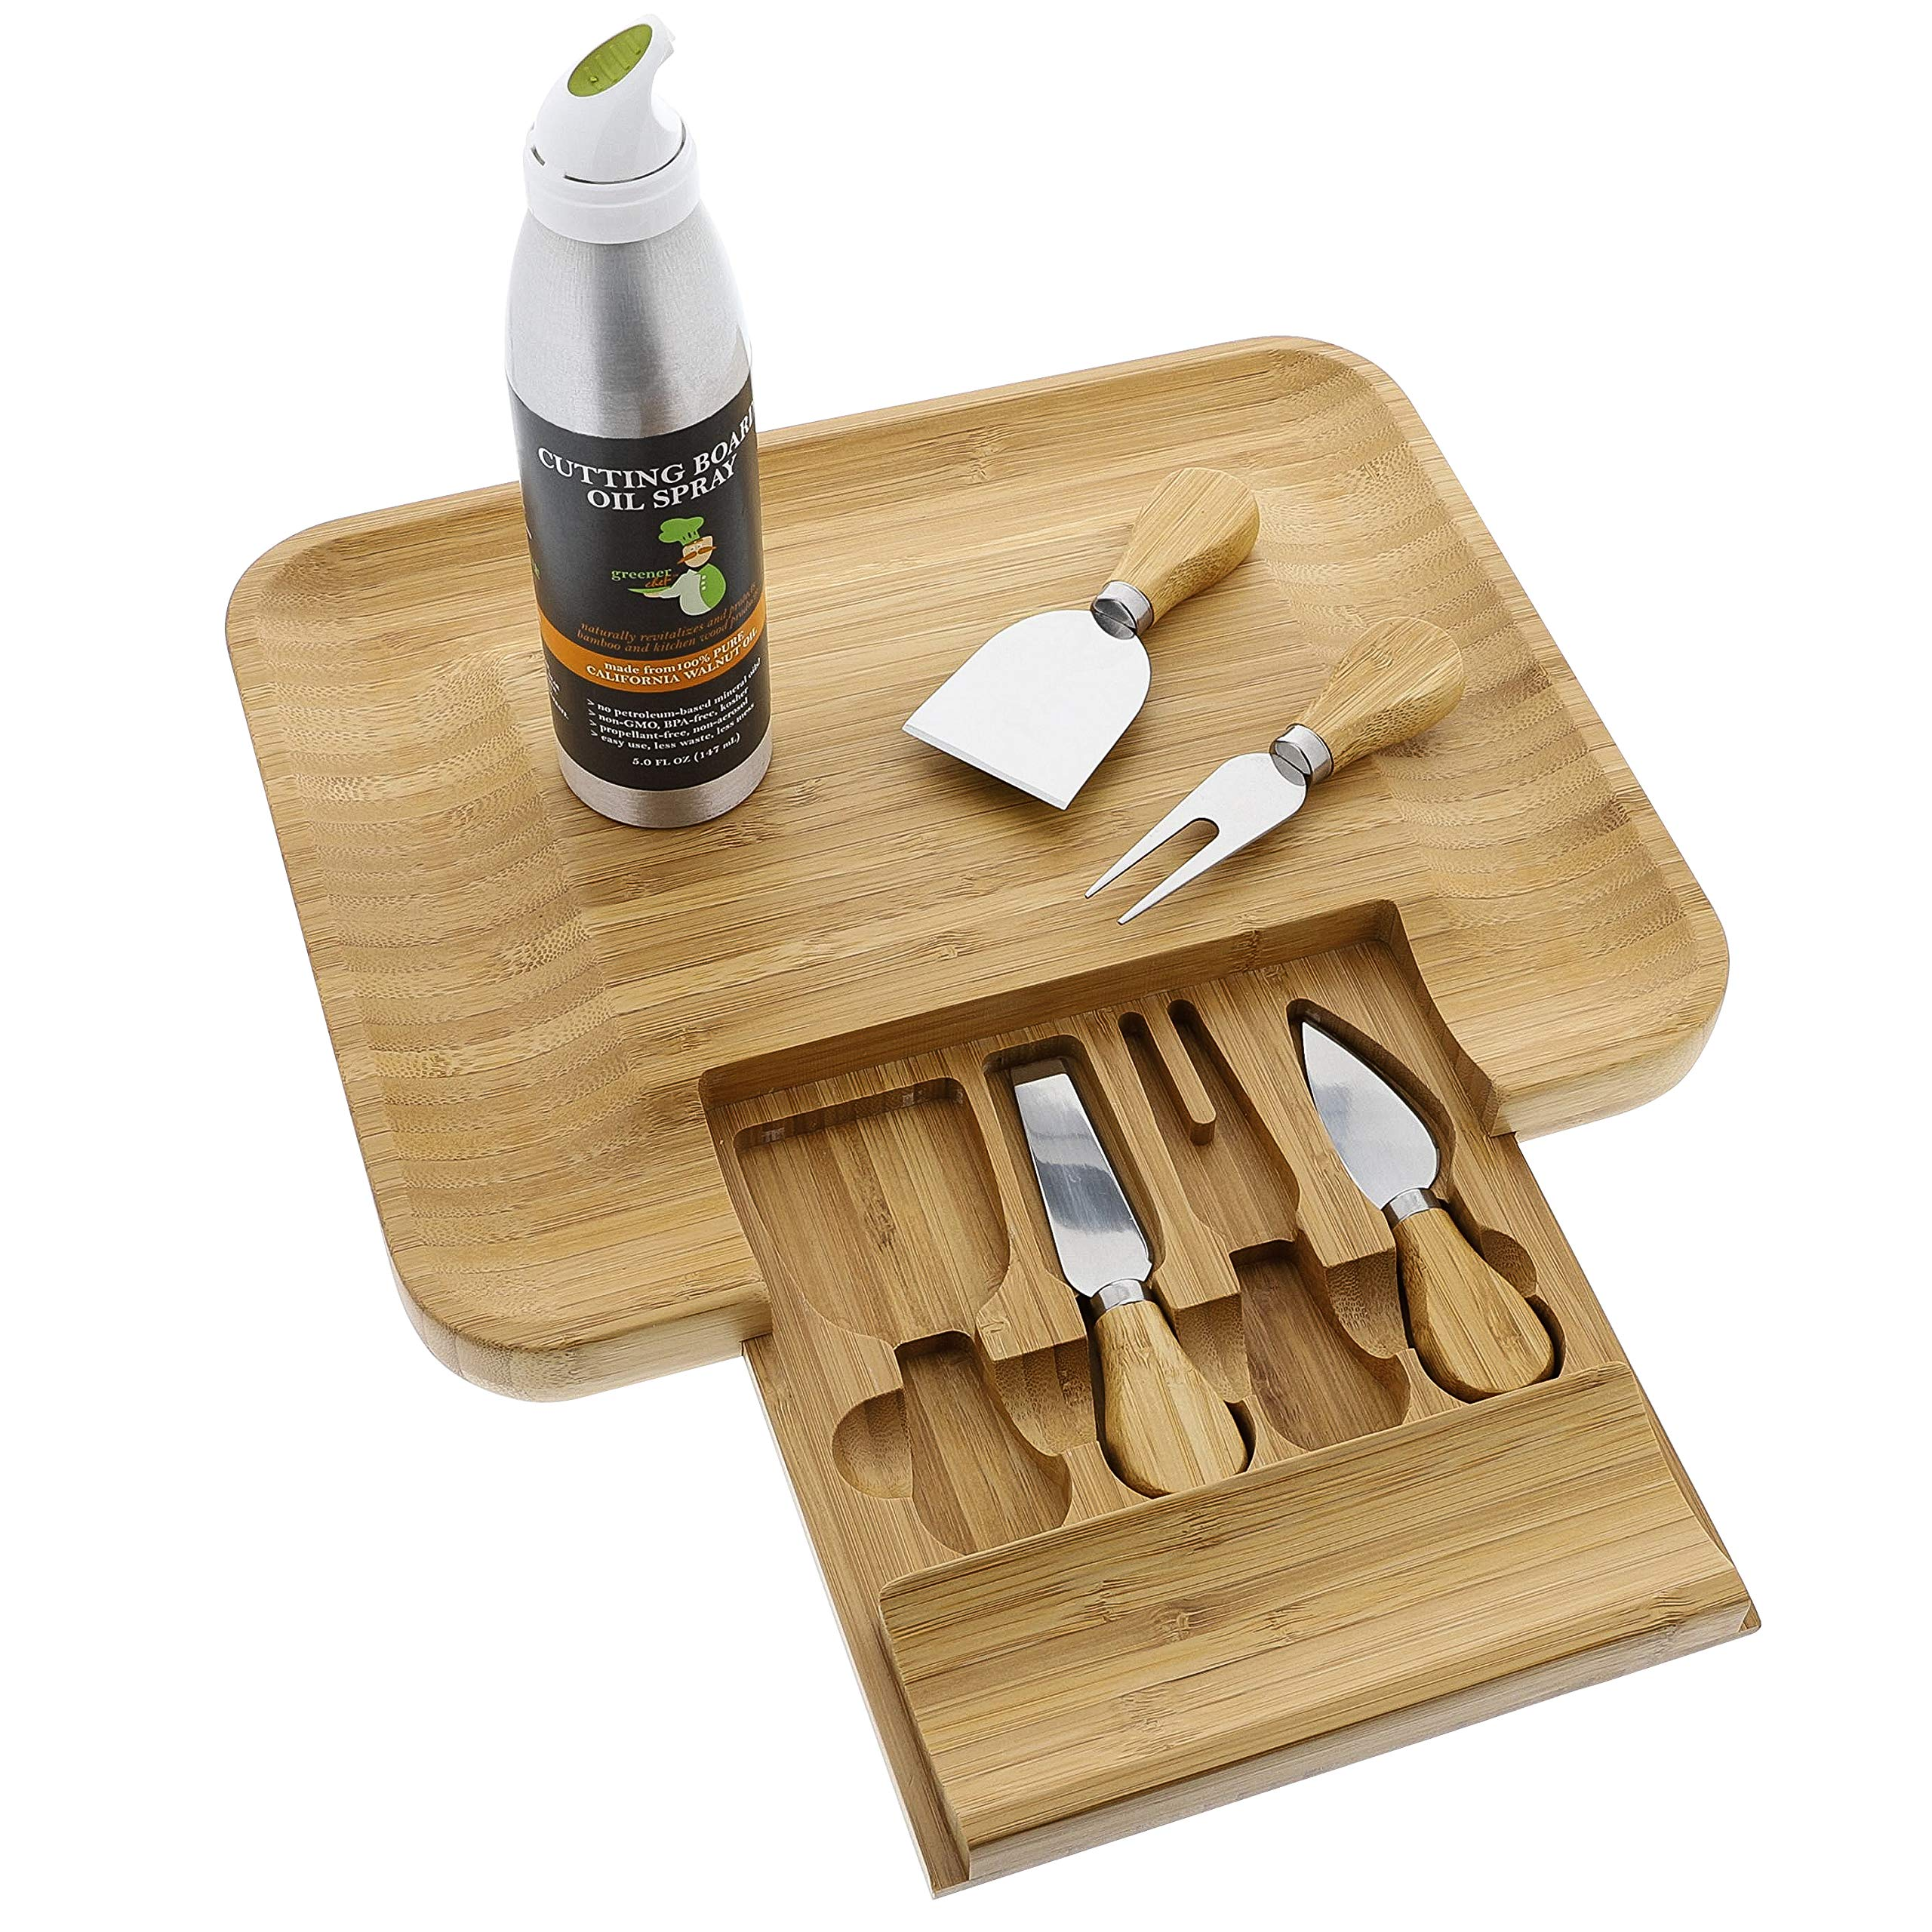 Beautiful Bamboo Cheese Board & Knife Set | Natural, Eco-Friendly & Elegant Cheese Platter Charcuterie Gift Set | Exclusive Cheeseboard With 4 Cheese Knives & Conditioning Oil Spray | Luxury Gift Idea